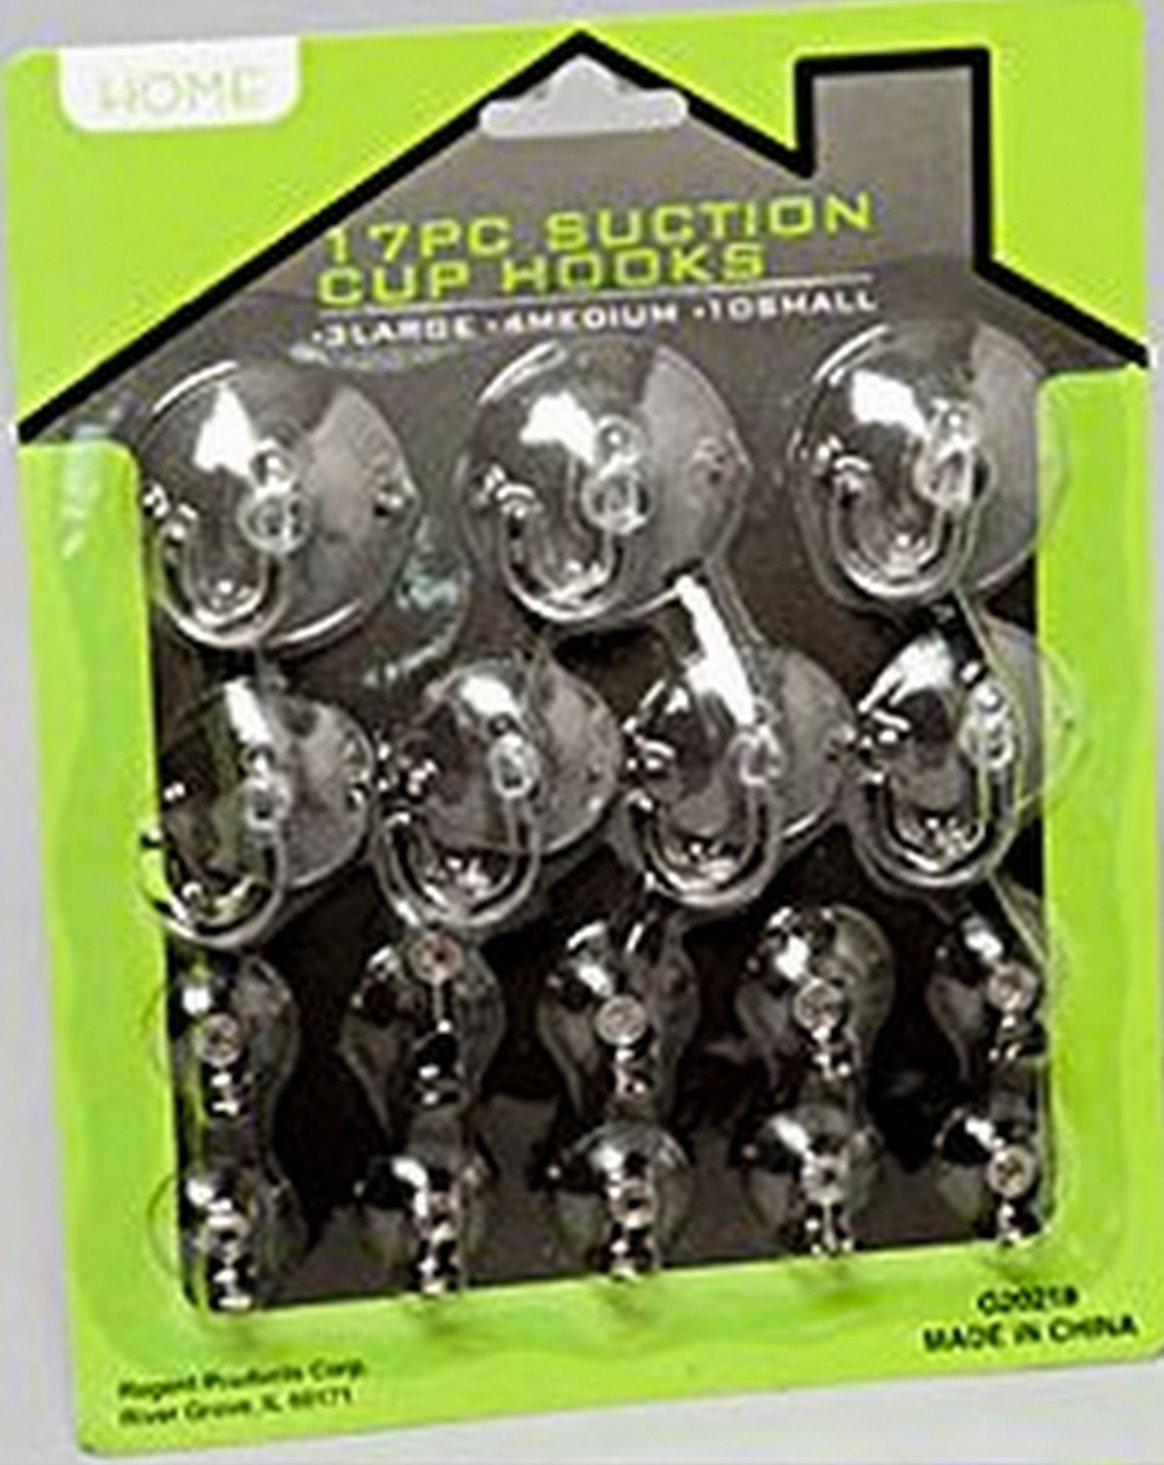 Set of 17 Alazco Suction Cup Hooks Clear Silicon with Plastic Hooks